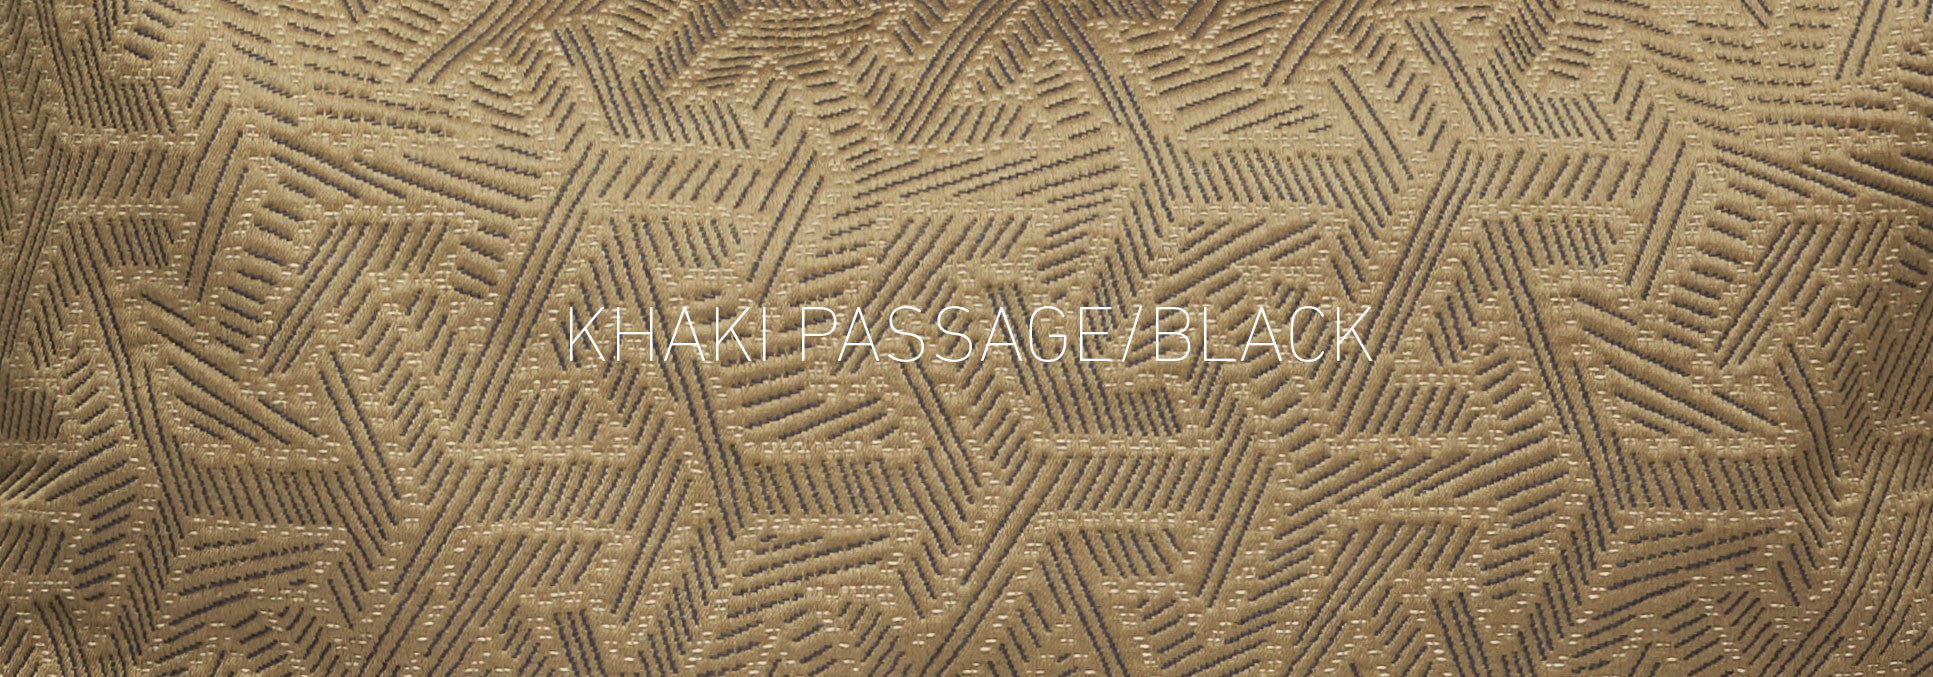 Mismo Khaki Passage/Black